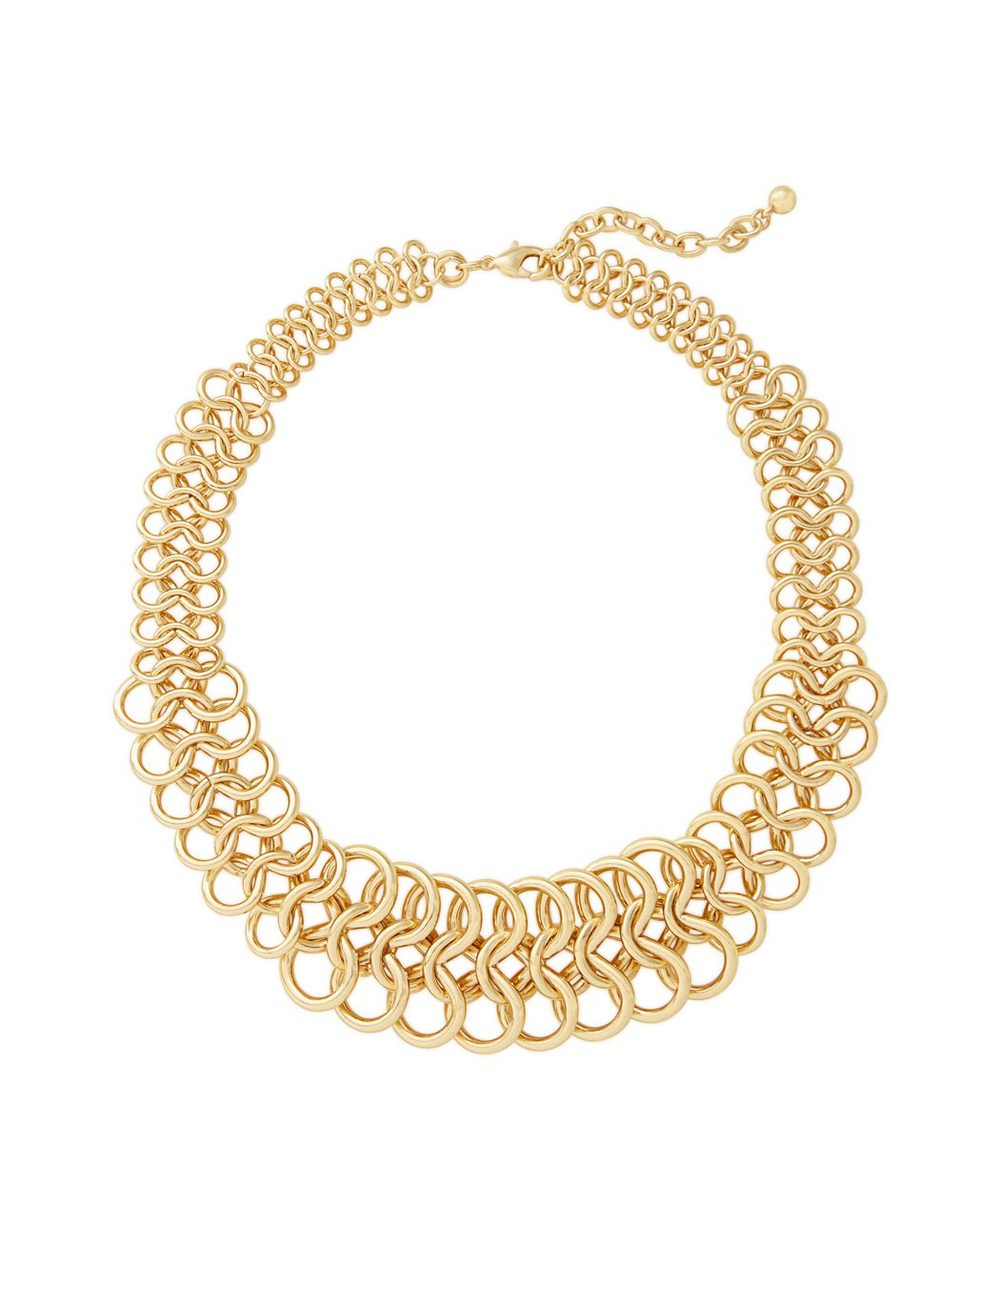 Flat Chain necklace. The Limited. Was: $39.95 Now: $19.97.